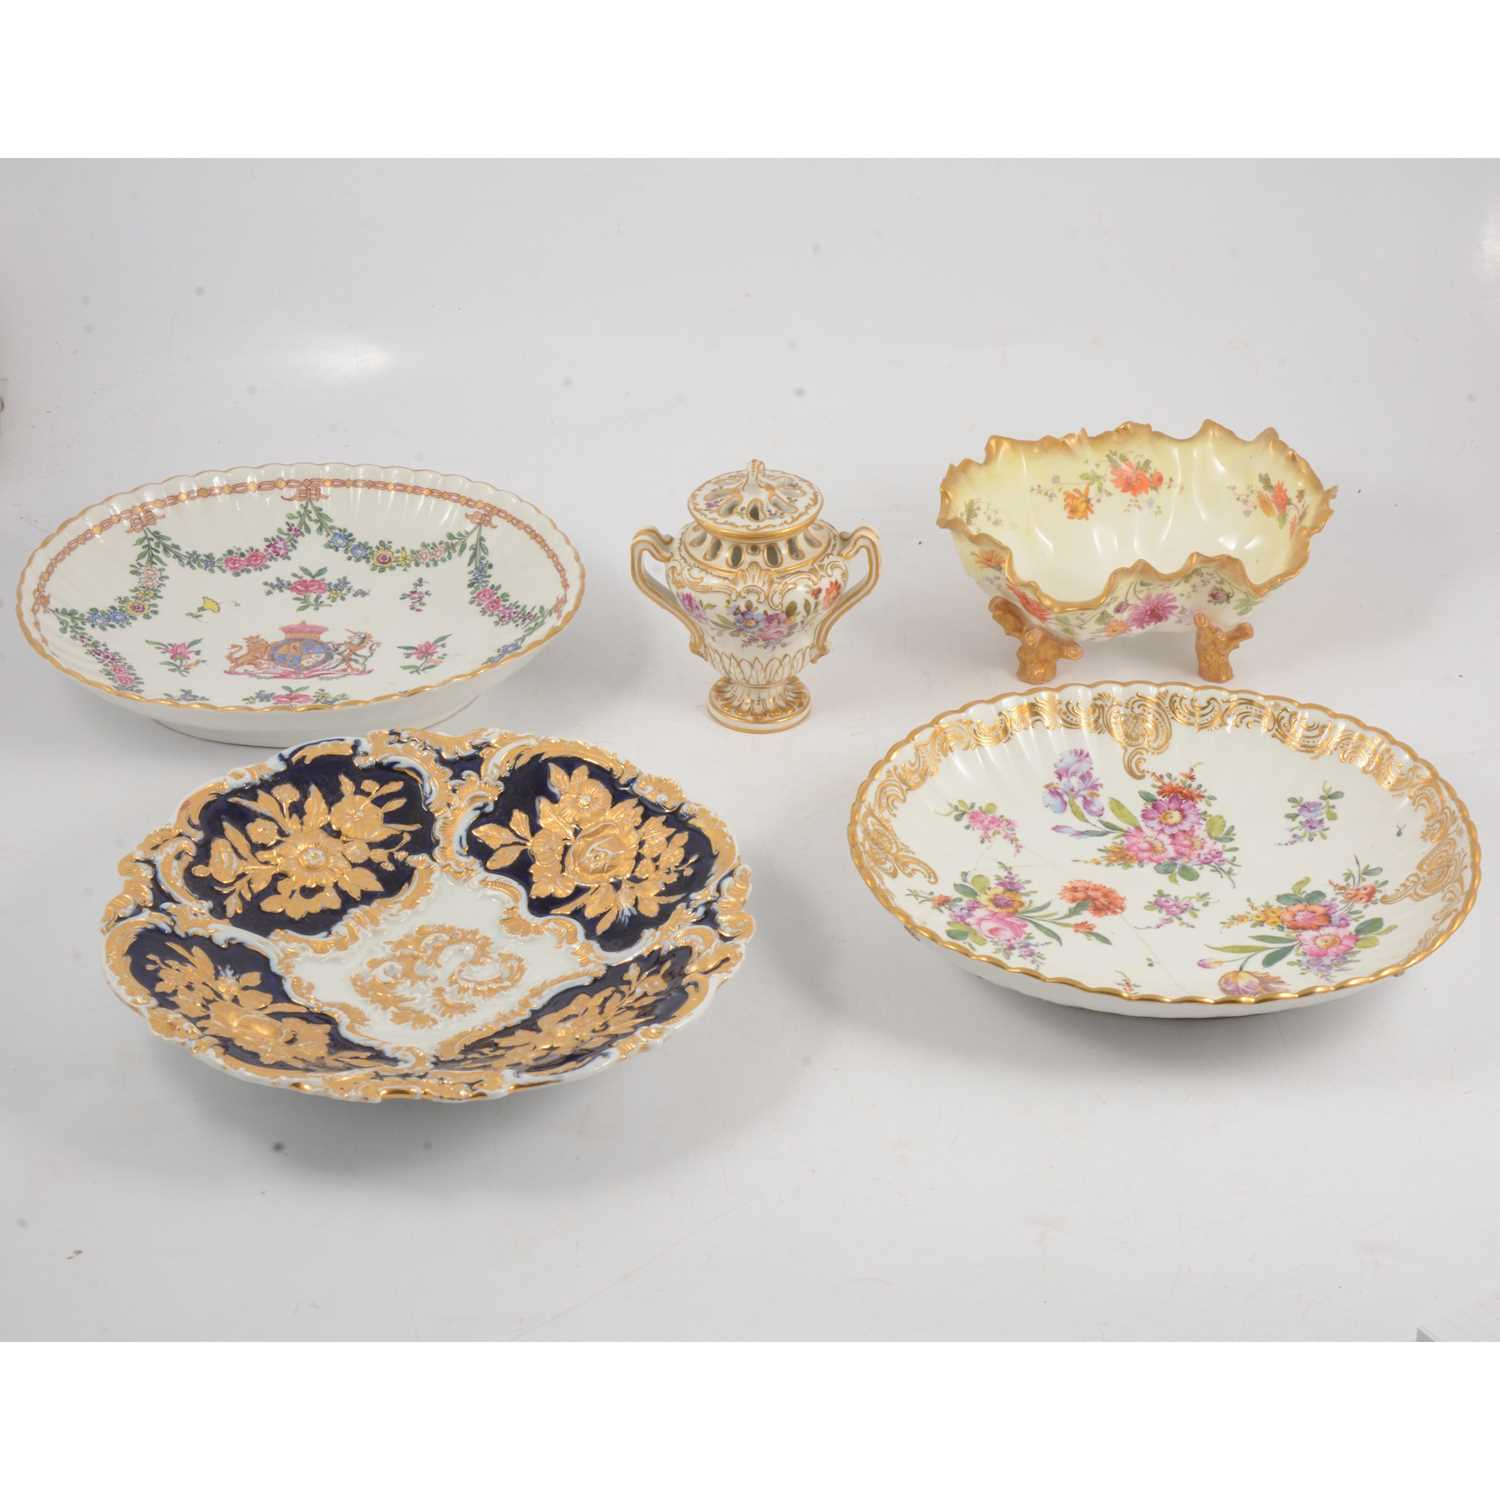 Lot 39 - Samson style armorial dish, and other Continental dishes and similar vase and cover